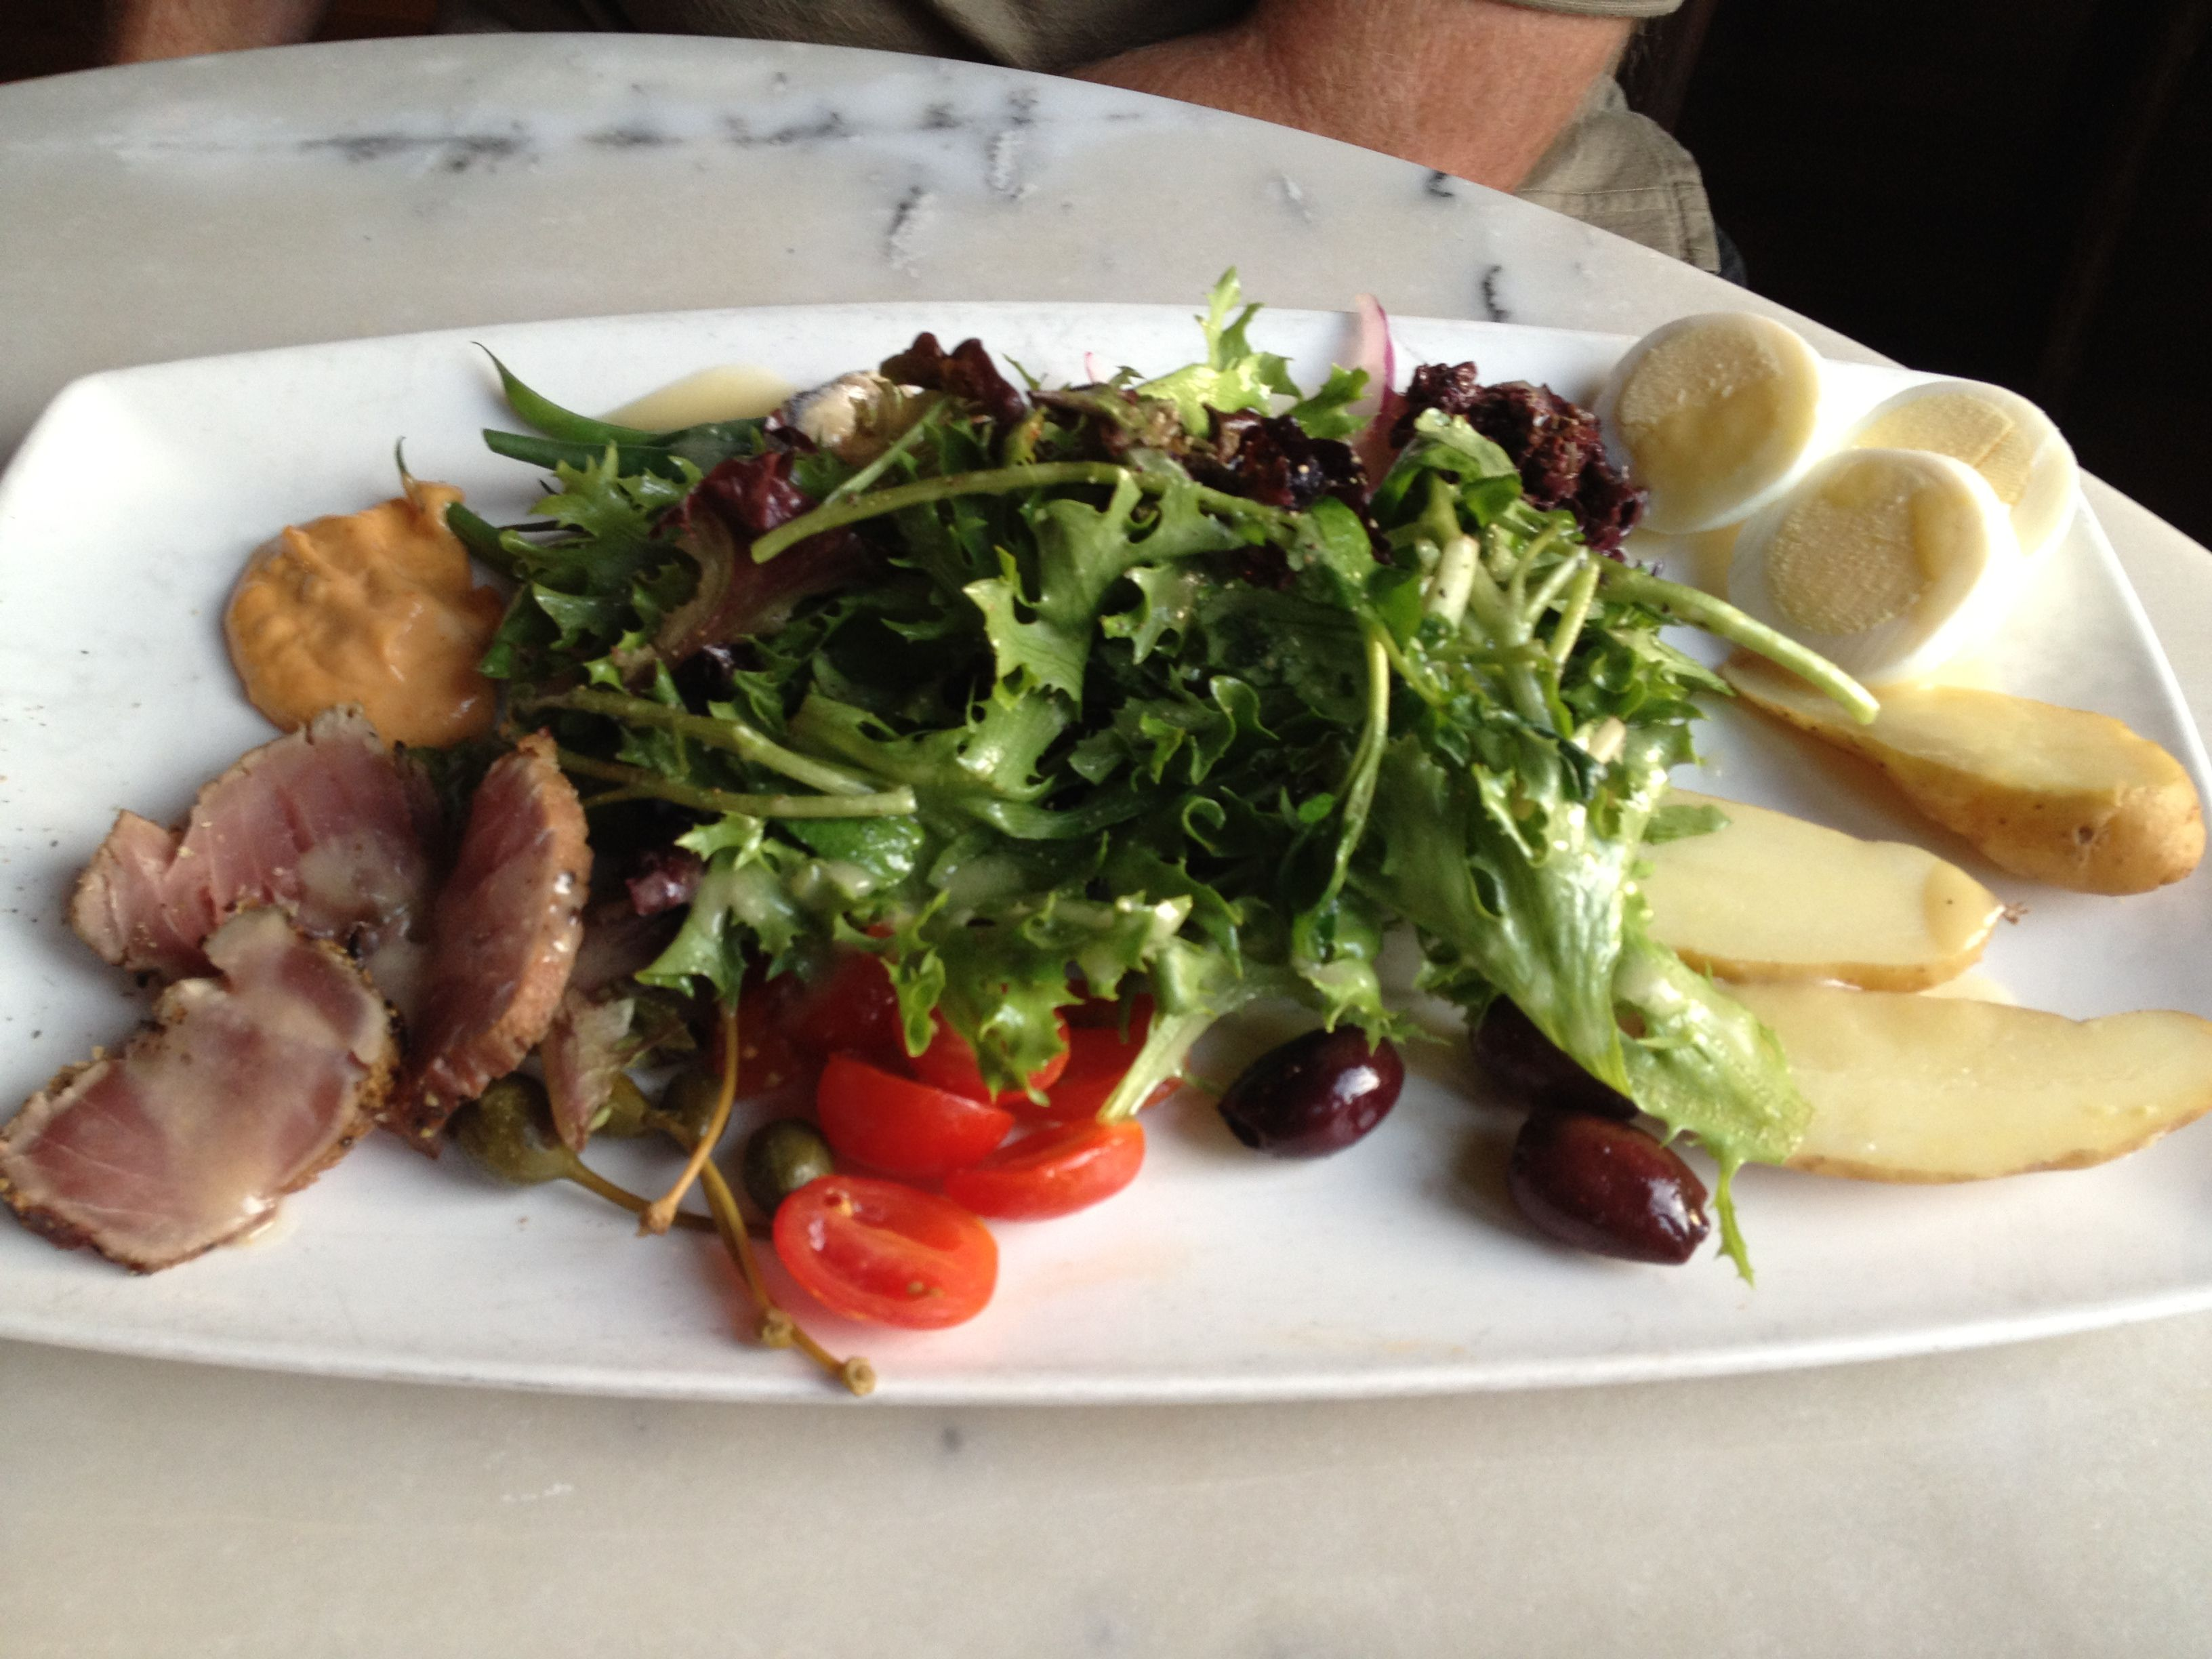 Salad nicoise at toulouse cafe and bar dallas good food nicoise salad ethnic recipes - Cuisine easy toulouse ...